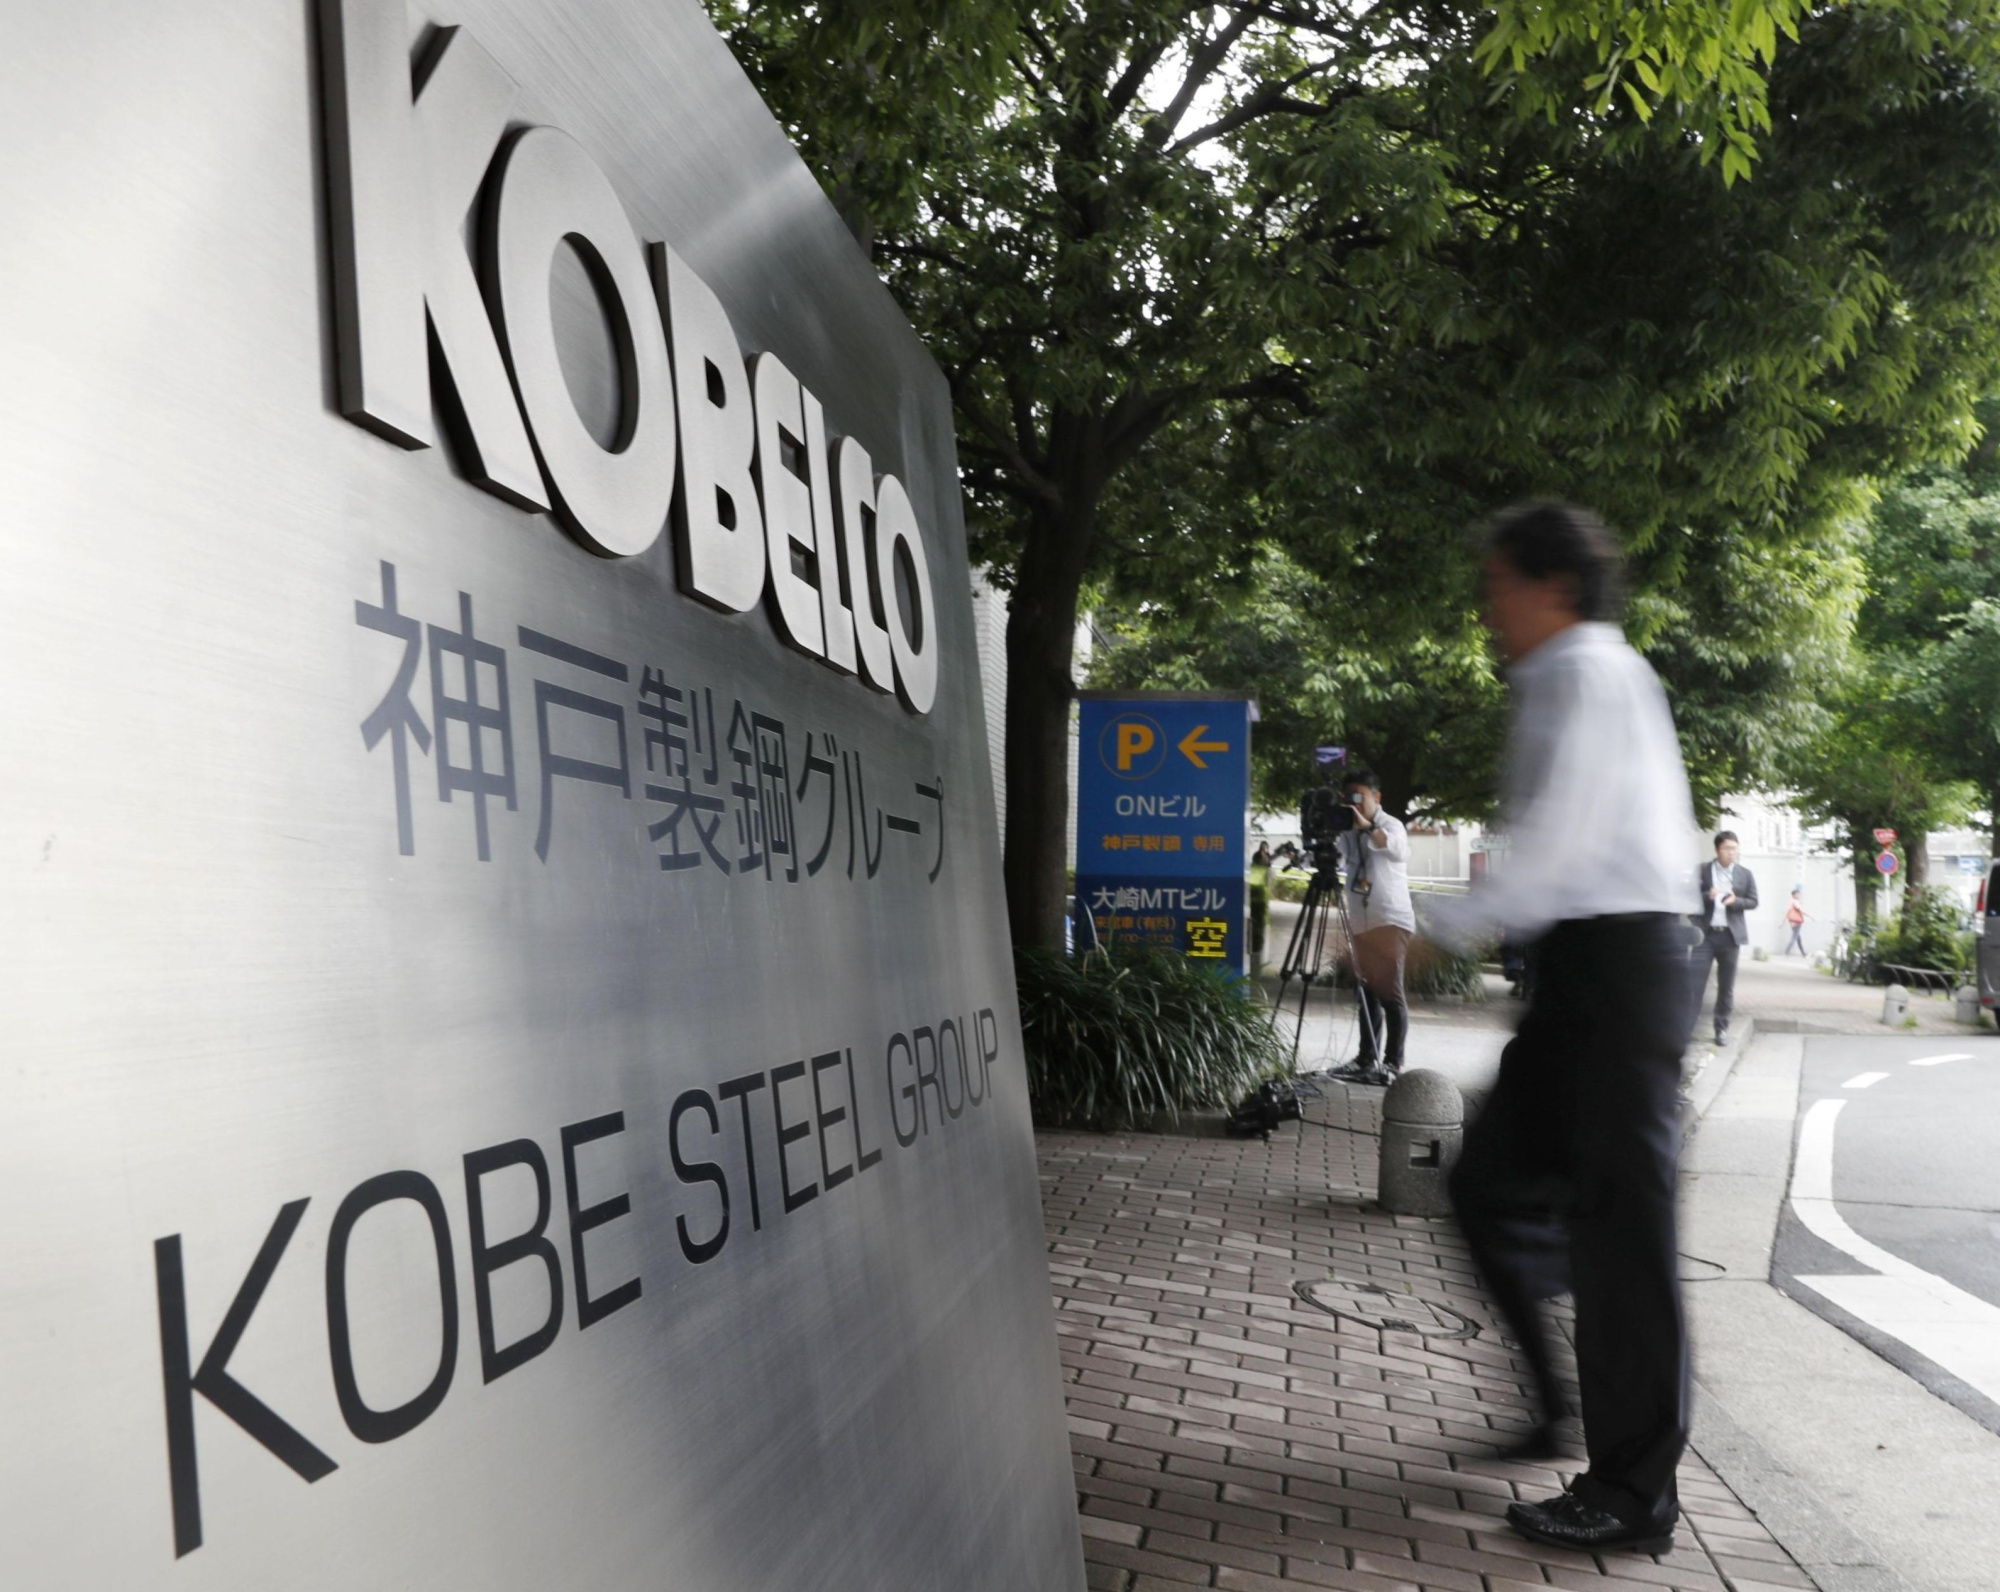 Prosecutors are planning to raid multiple Kobe Steel Ltd. offices in connection with the company's data fabrication scandal. | KYODO